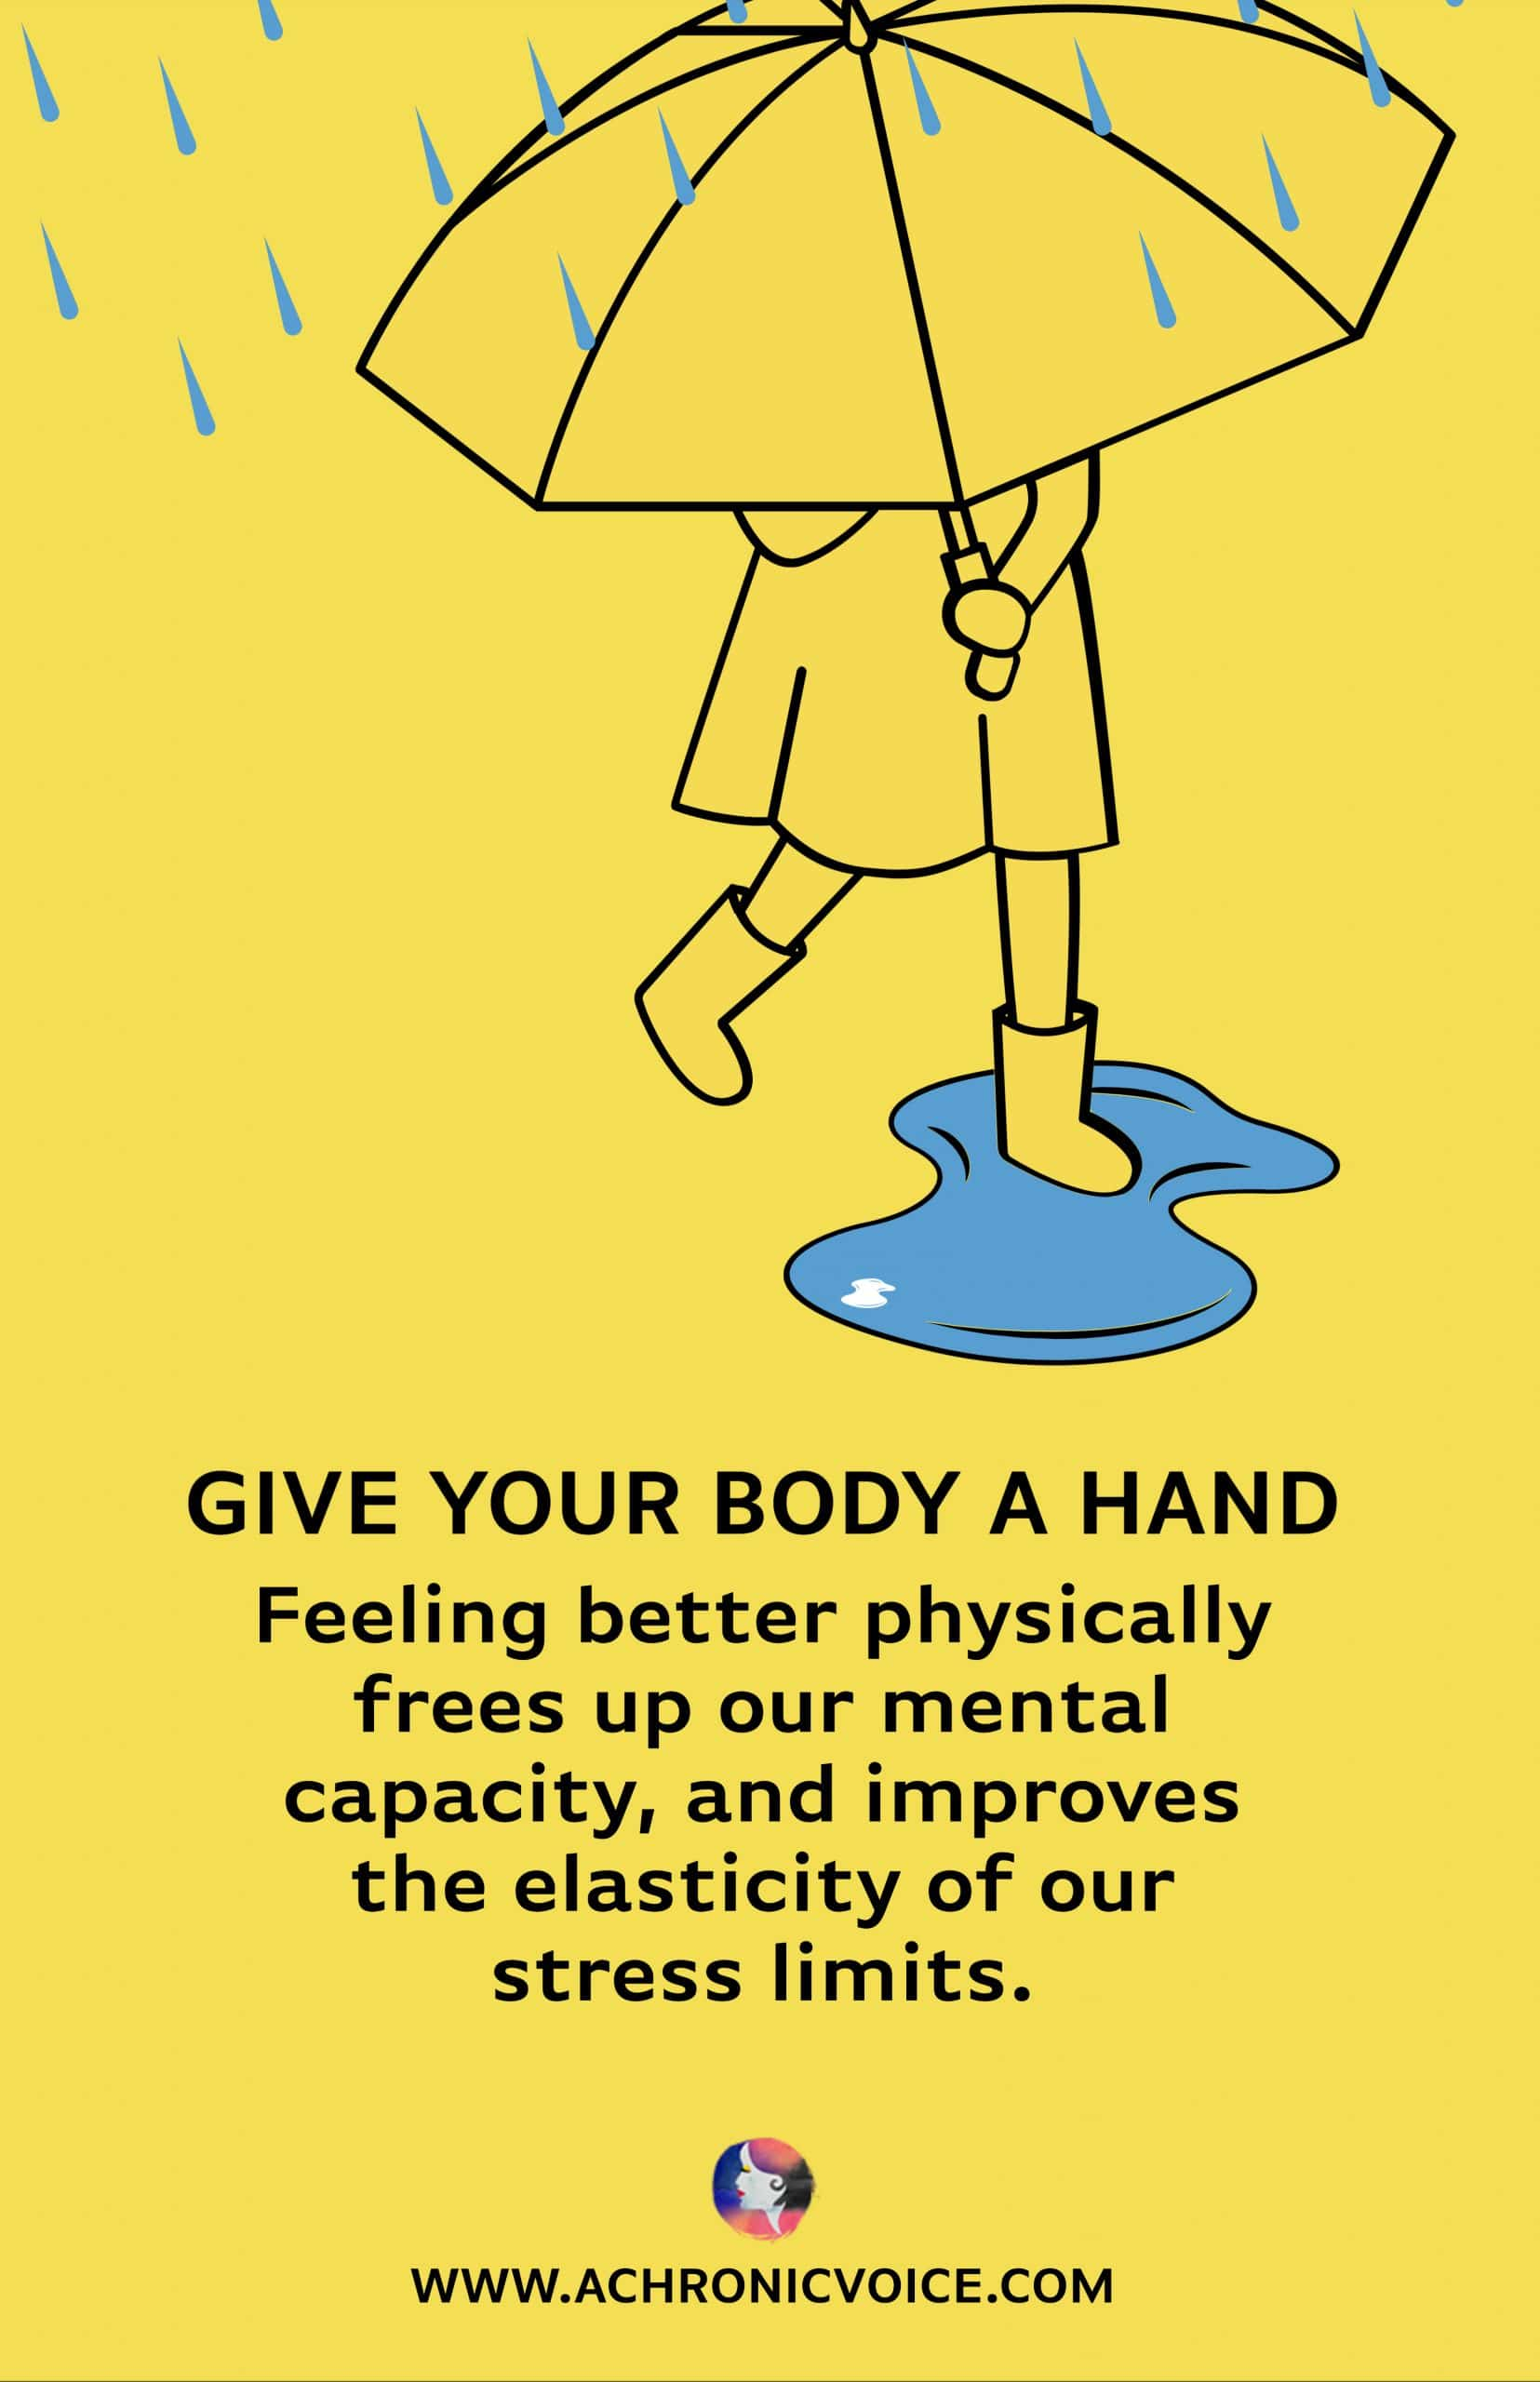 Give Your Body a Hand